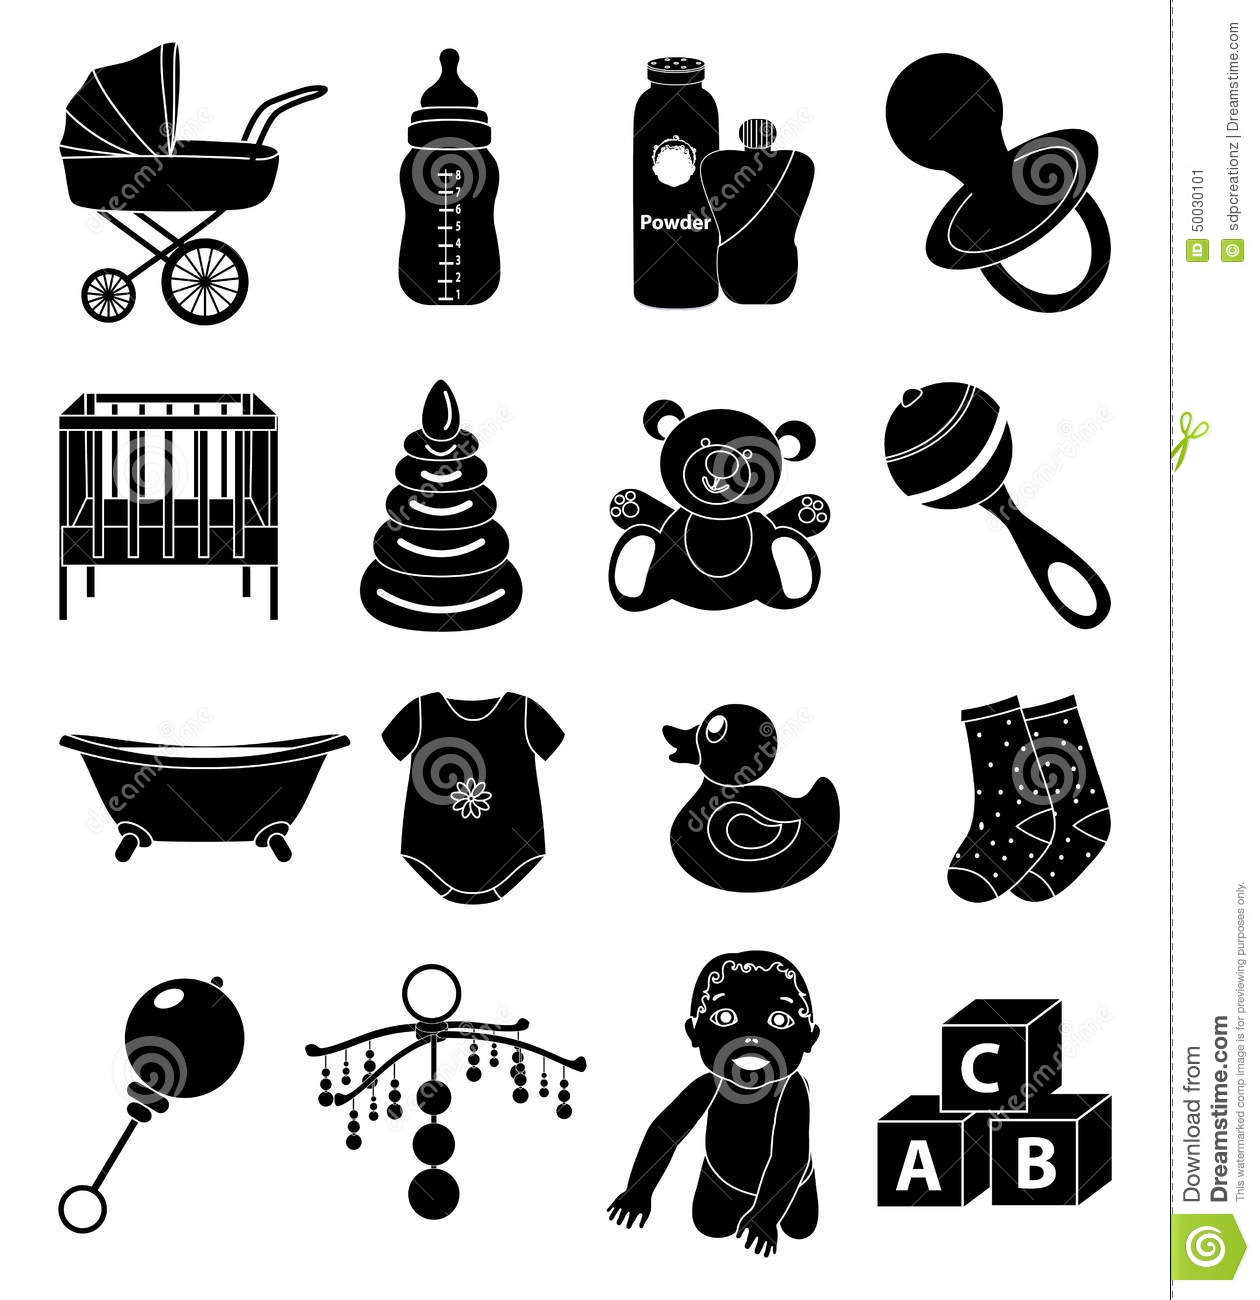 Toddler Toys Black And White : Baby toy icons set stock vector illustration of bell